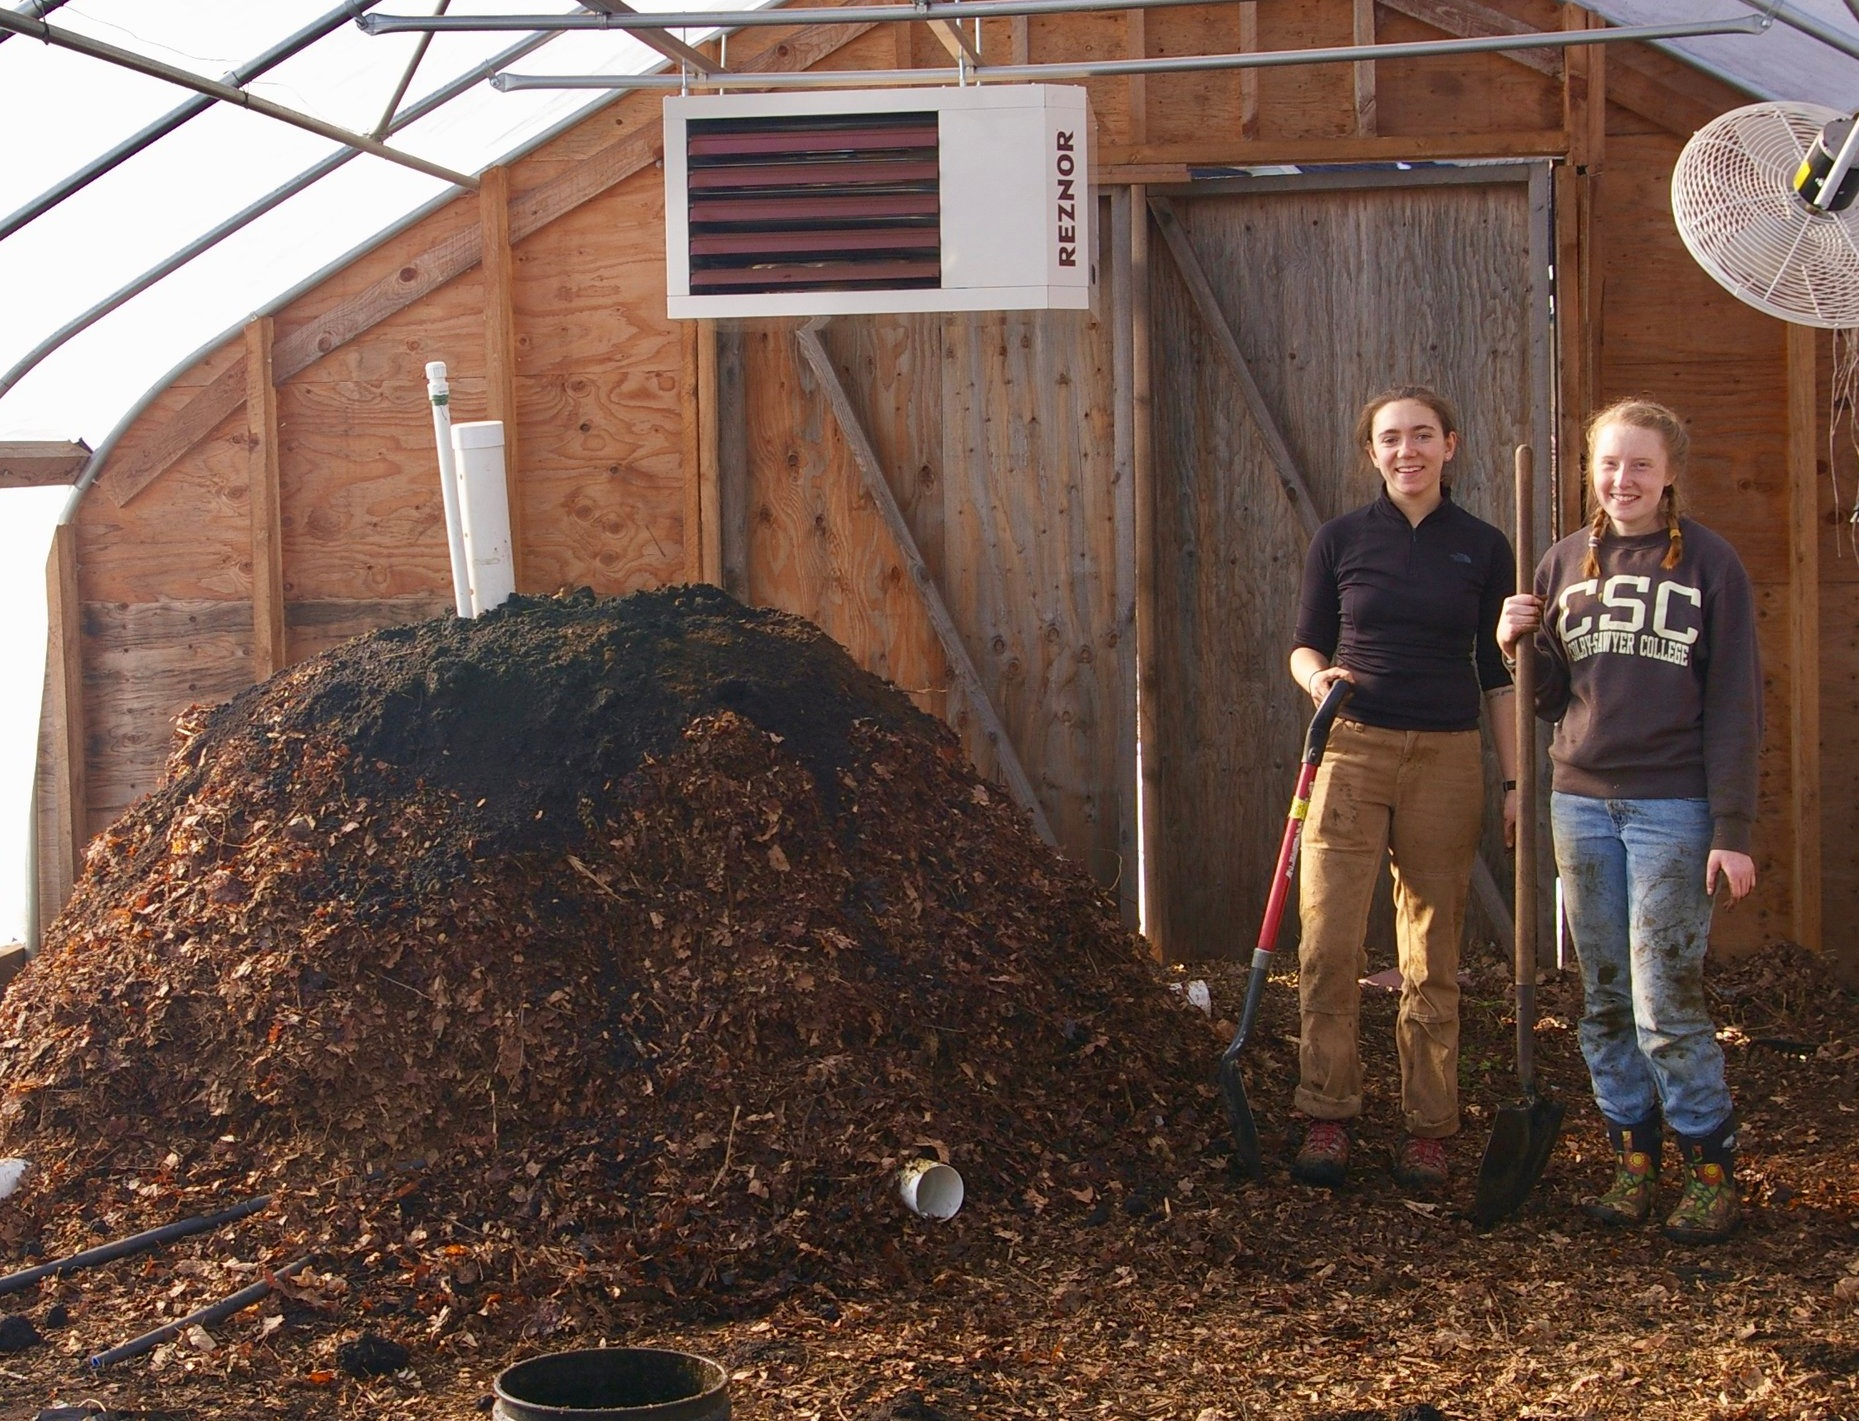 Colby-Sawyer College students experiment with compost as a source of heat for winter growing.